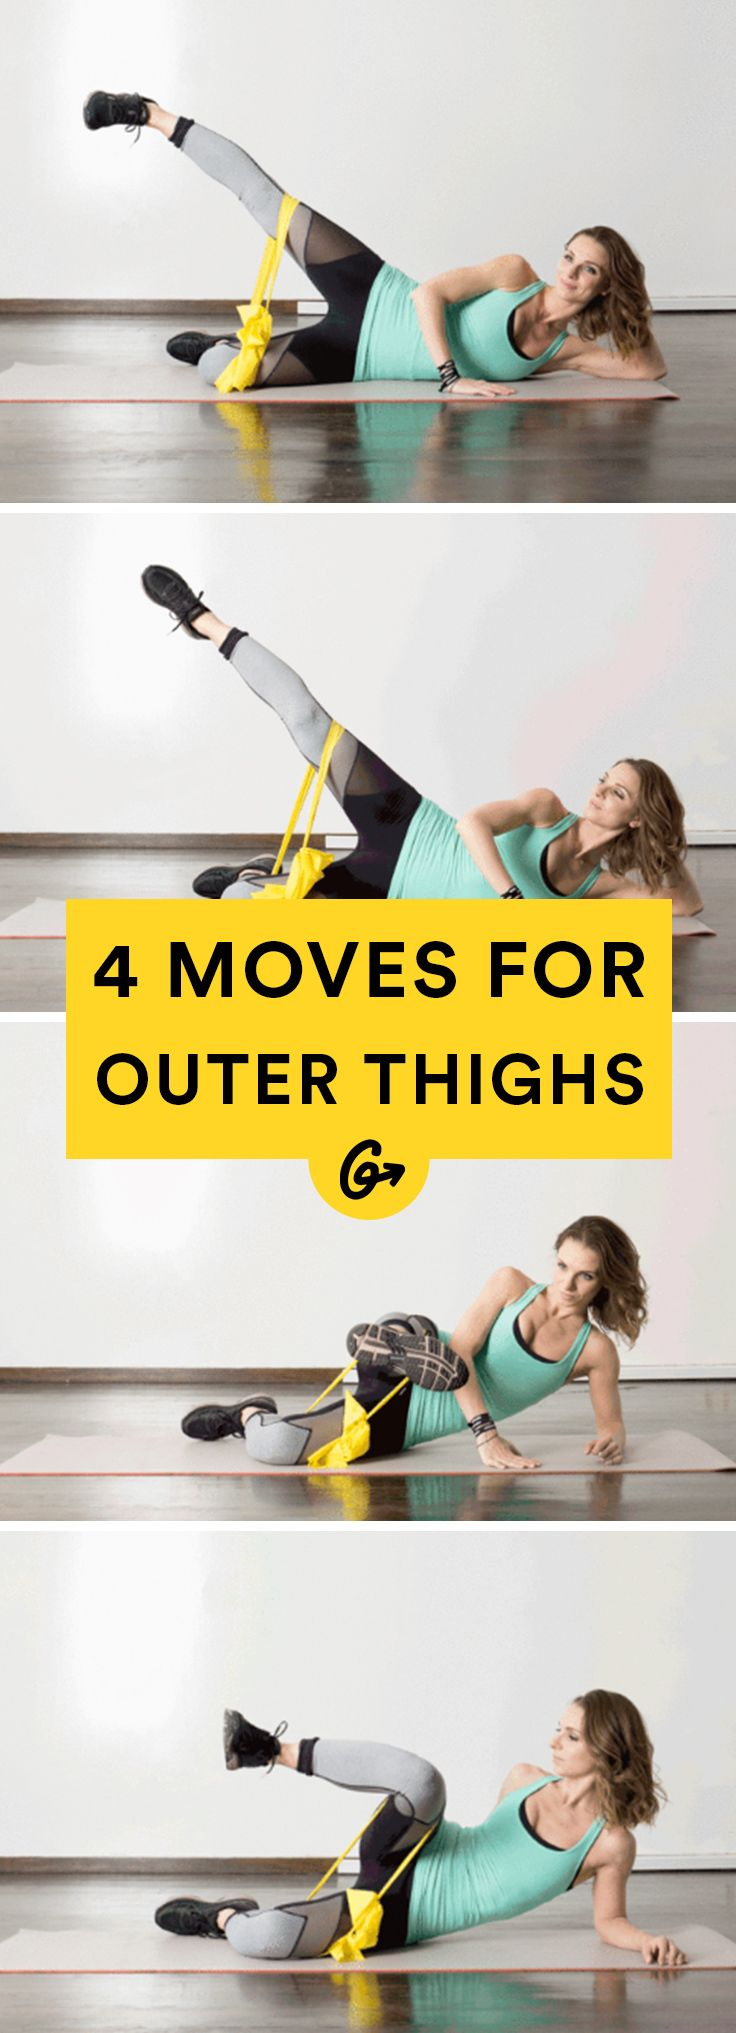 The Best Exercises for Inner and Outer Thighs #leg #thigh #workout http://greatist.com/move/leg-workout-the-best-moves-for-inner-and-outer-thighs